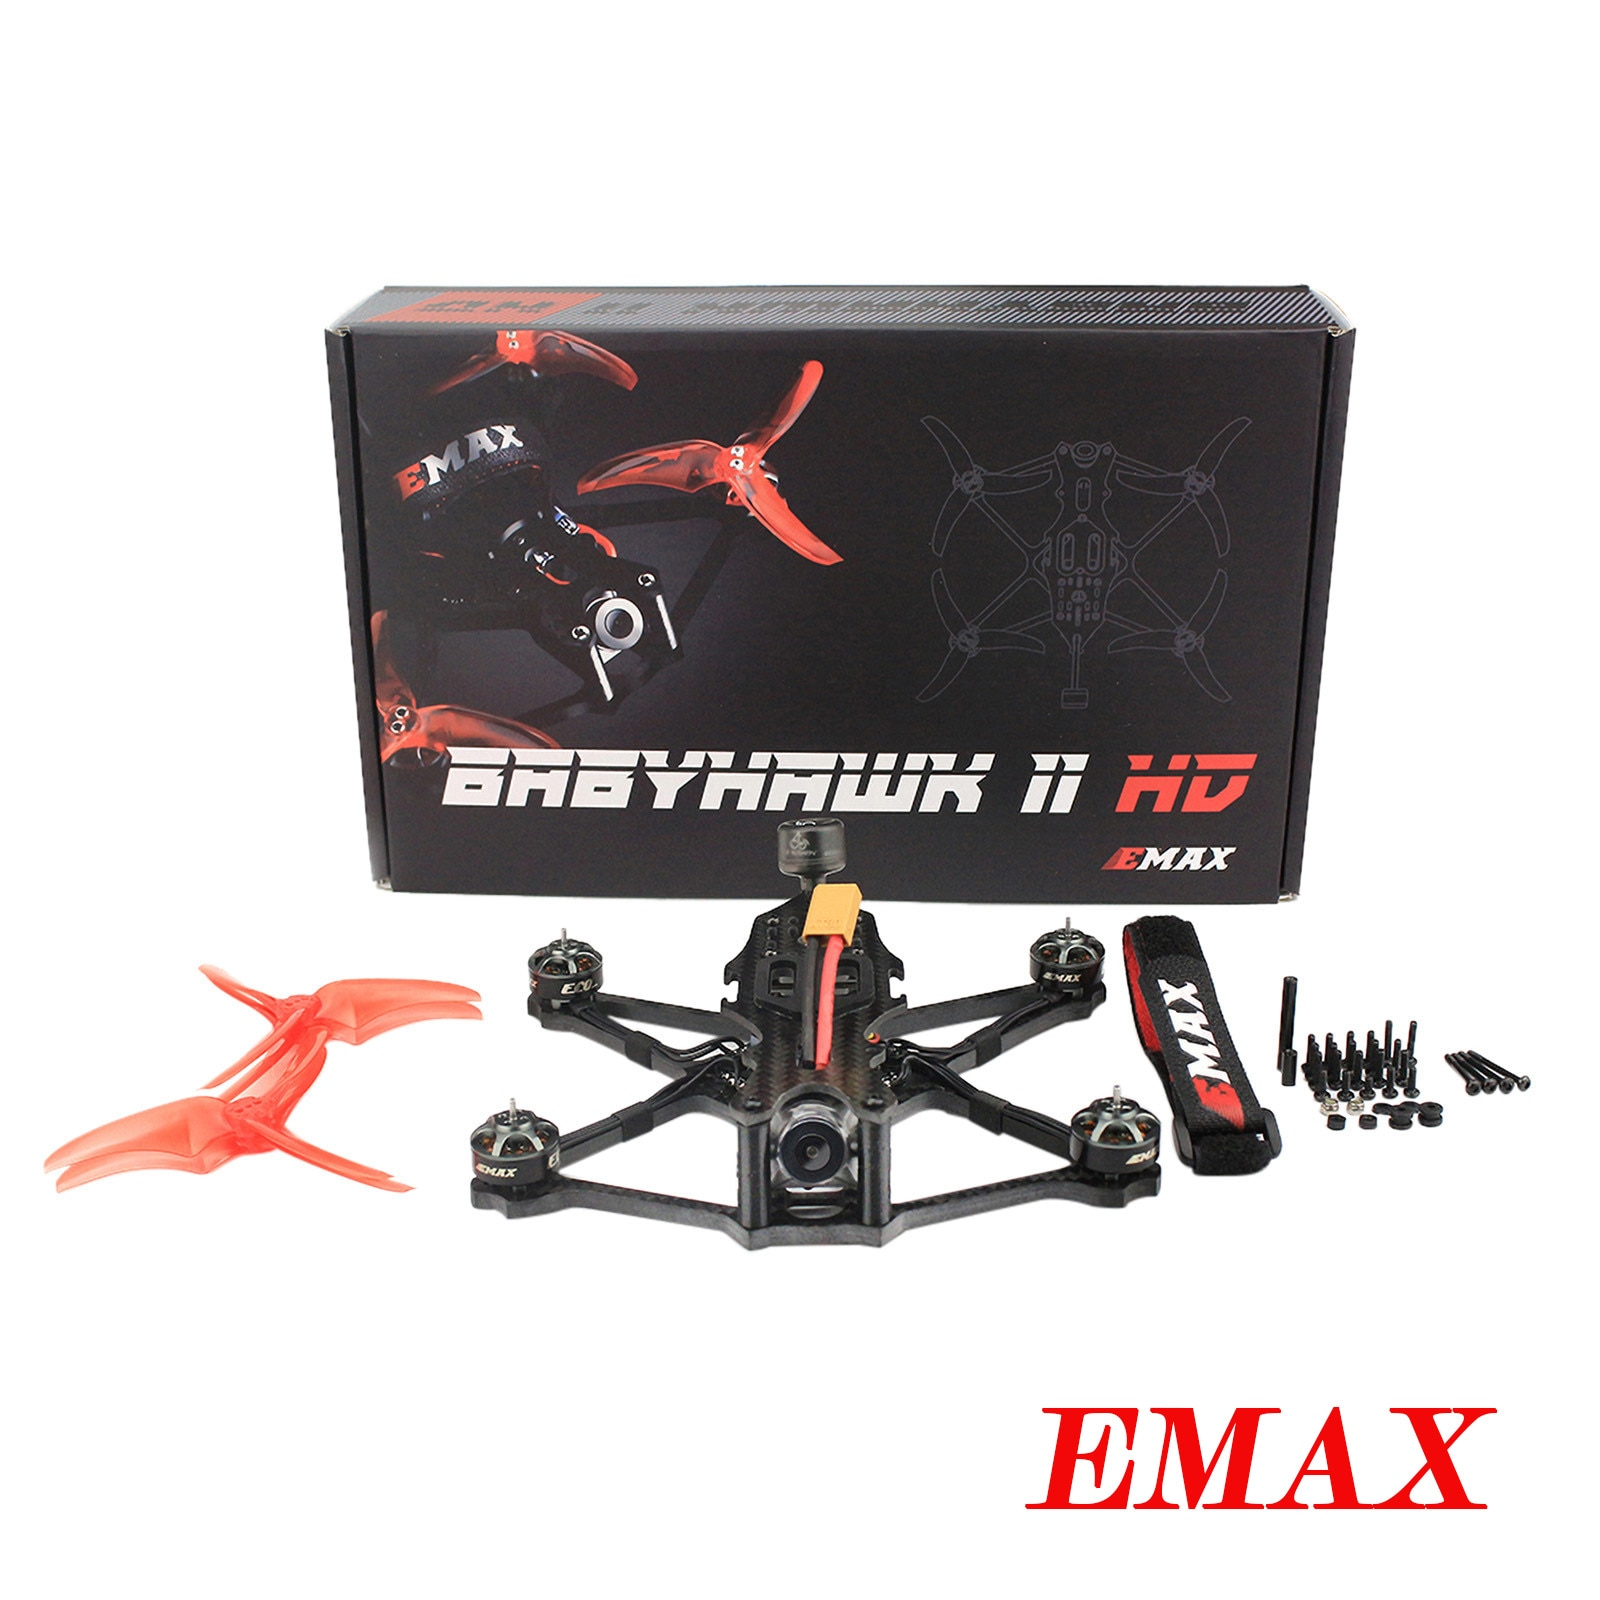 EMAX High-altitude Camera Remote Control Drone Babyhawk 2 Hd Tbs Receiver 155mm F4 4s Fpv Racing Drone Outdoor Flying Toy #K